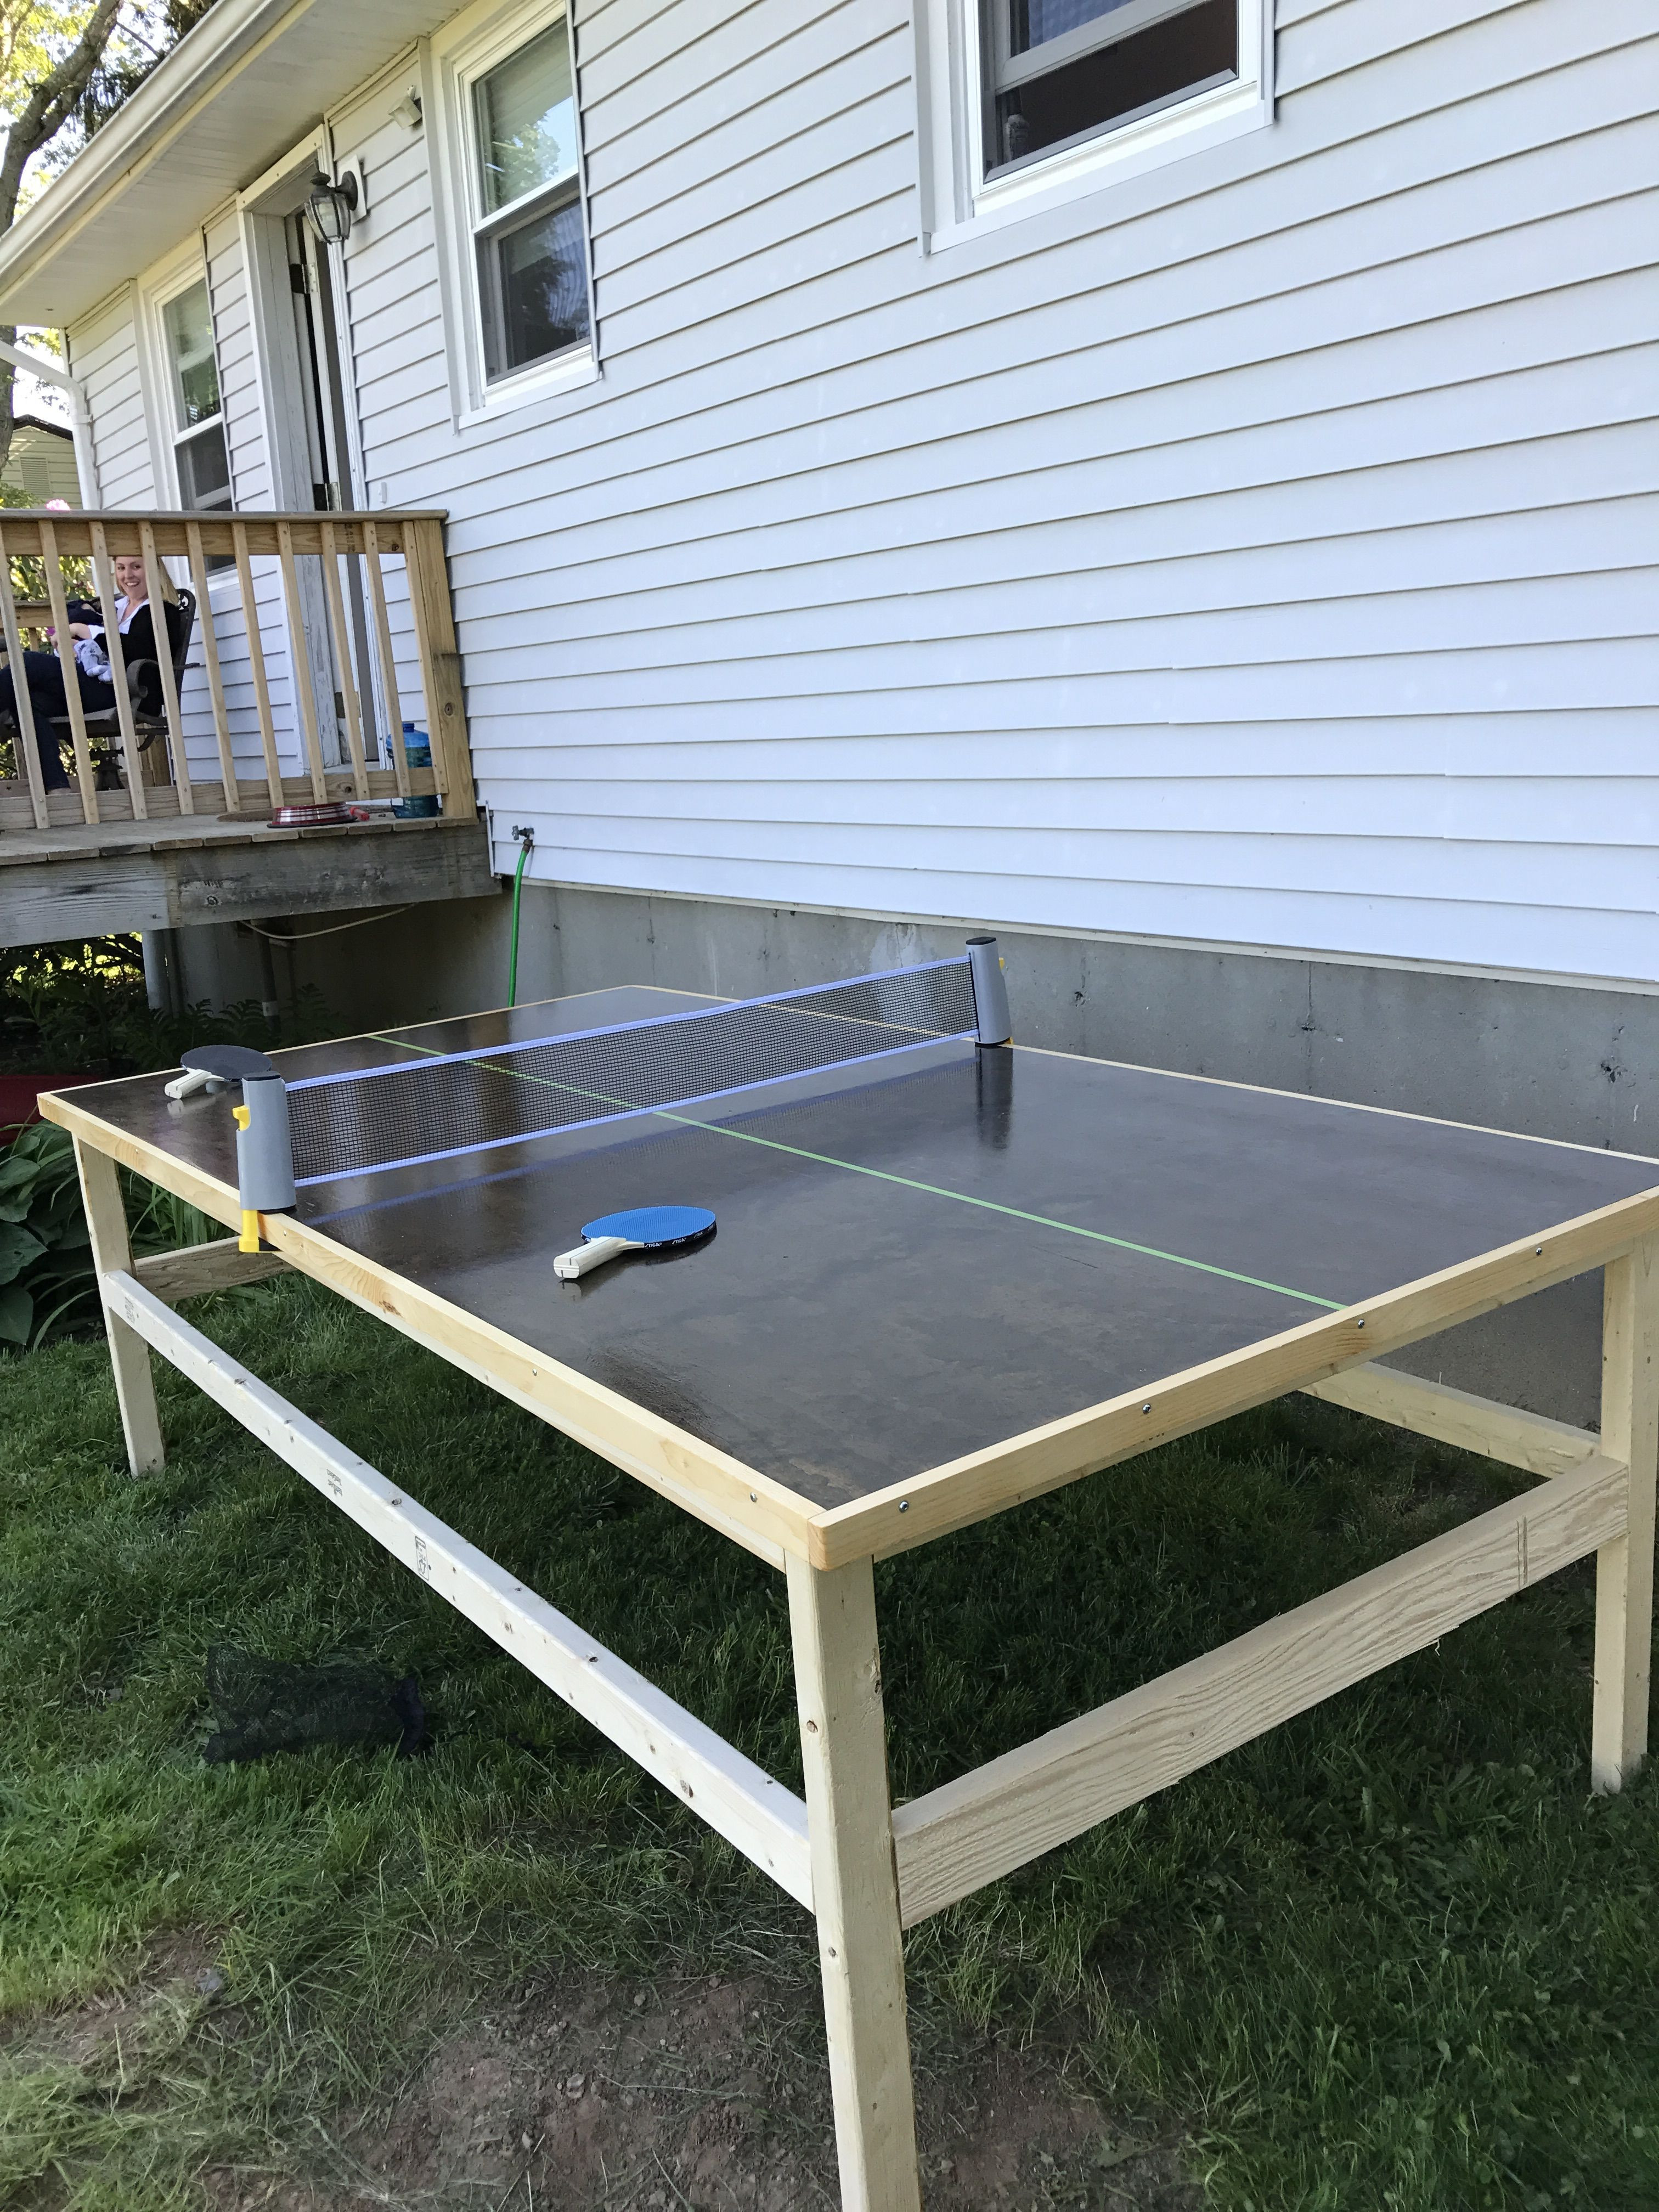 Best ideas about DIY Outside Ping Pong Table . Save or Pin Diy ping pong table used the Kreg jig for the legs has Now.